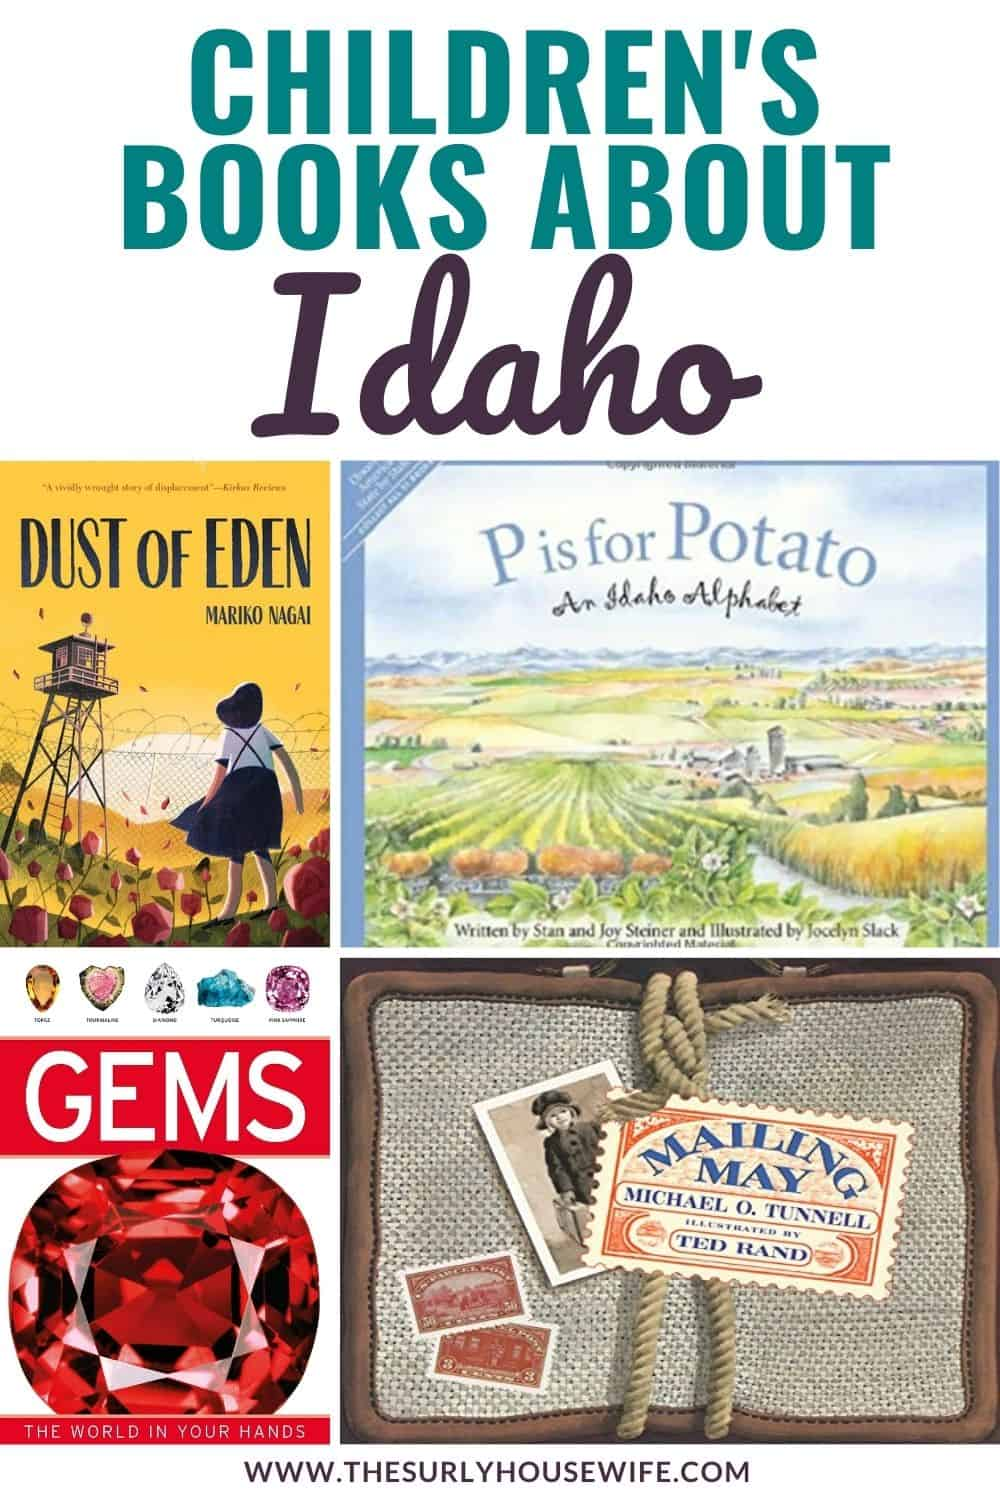 Need children's books about Idaho? This book list includes picture books about Idaho as well as chapter books set in Idaho, perfect for a state unit study!